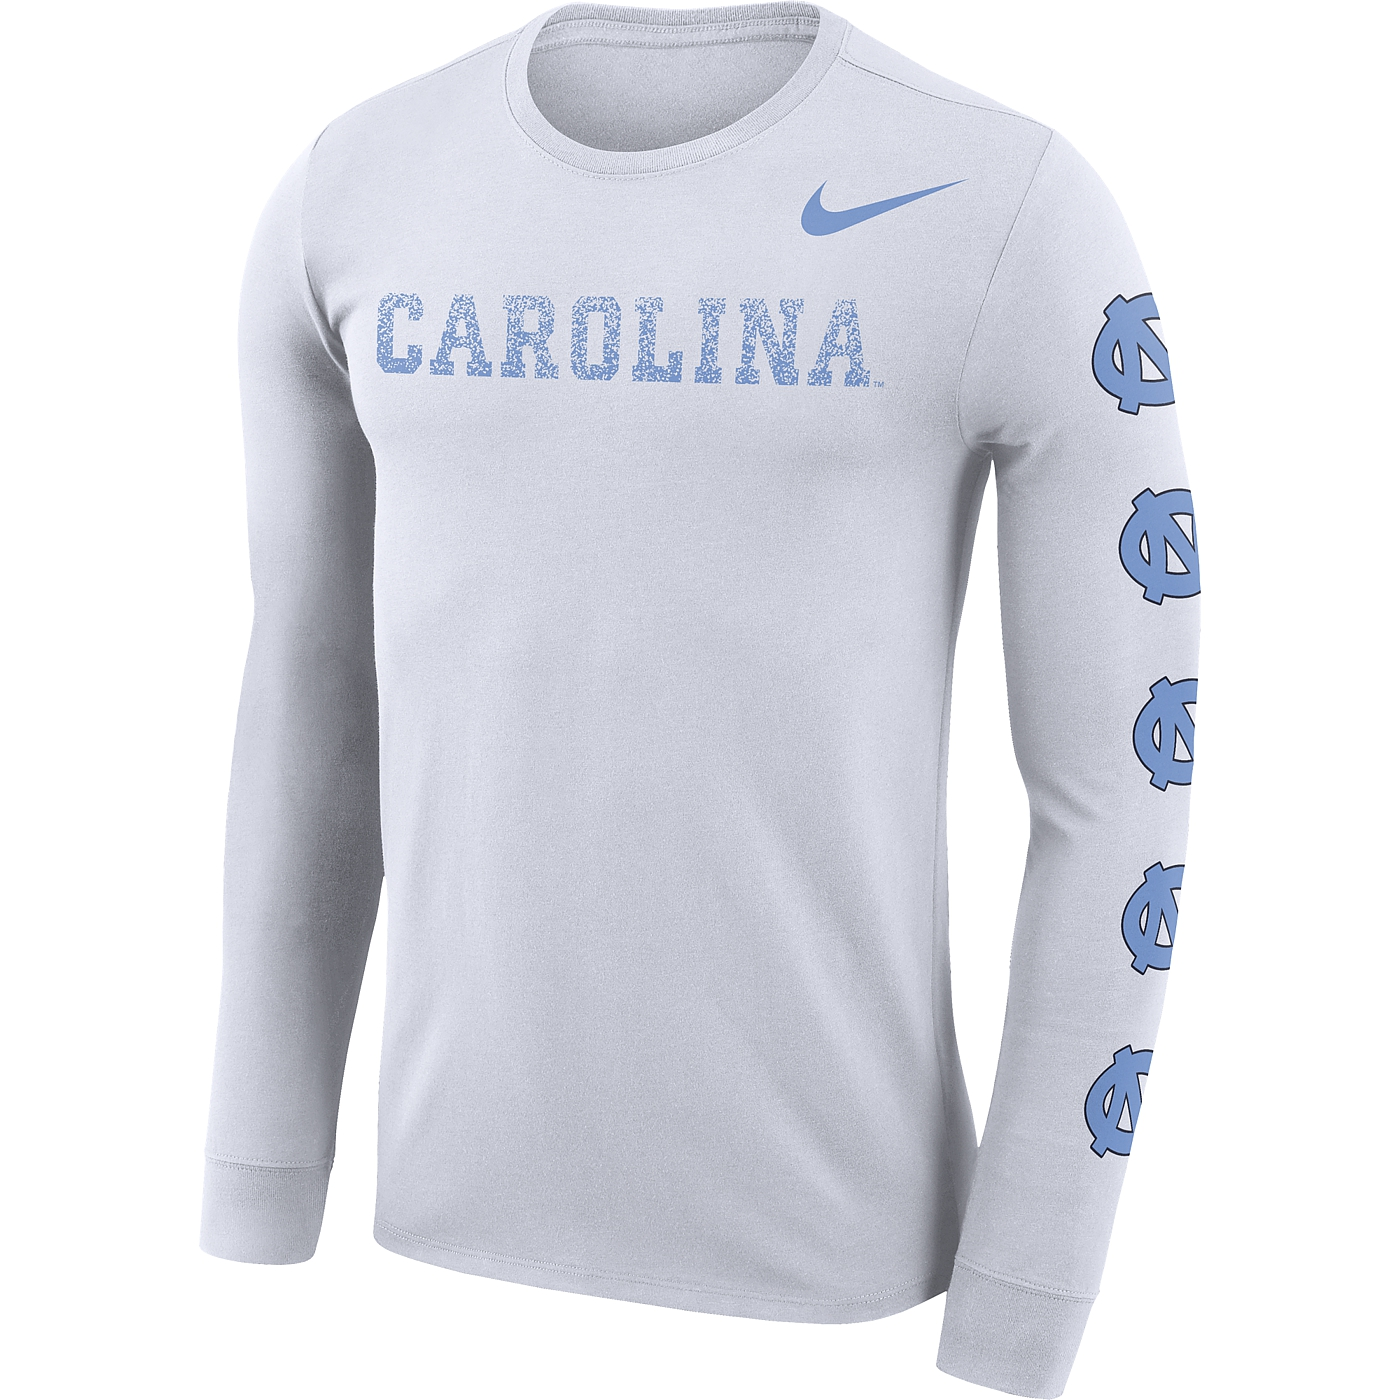 9eff3fbdab6275 Johnny T-shirt - North Carolina Tar Heels - Nike L S Repeating ...